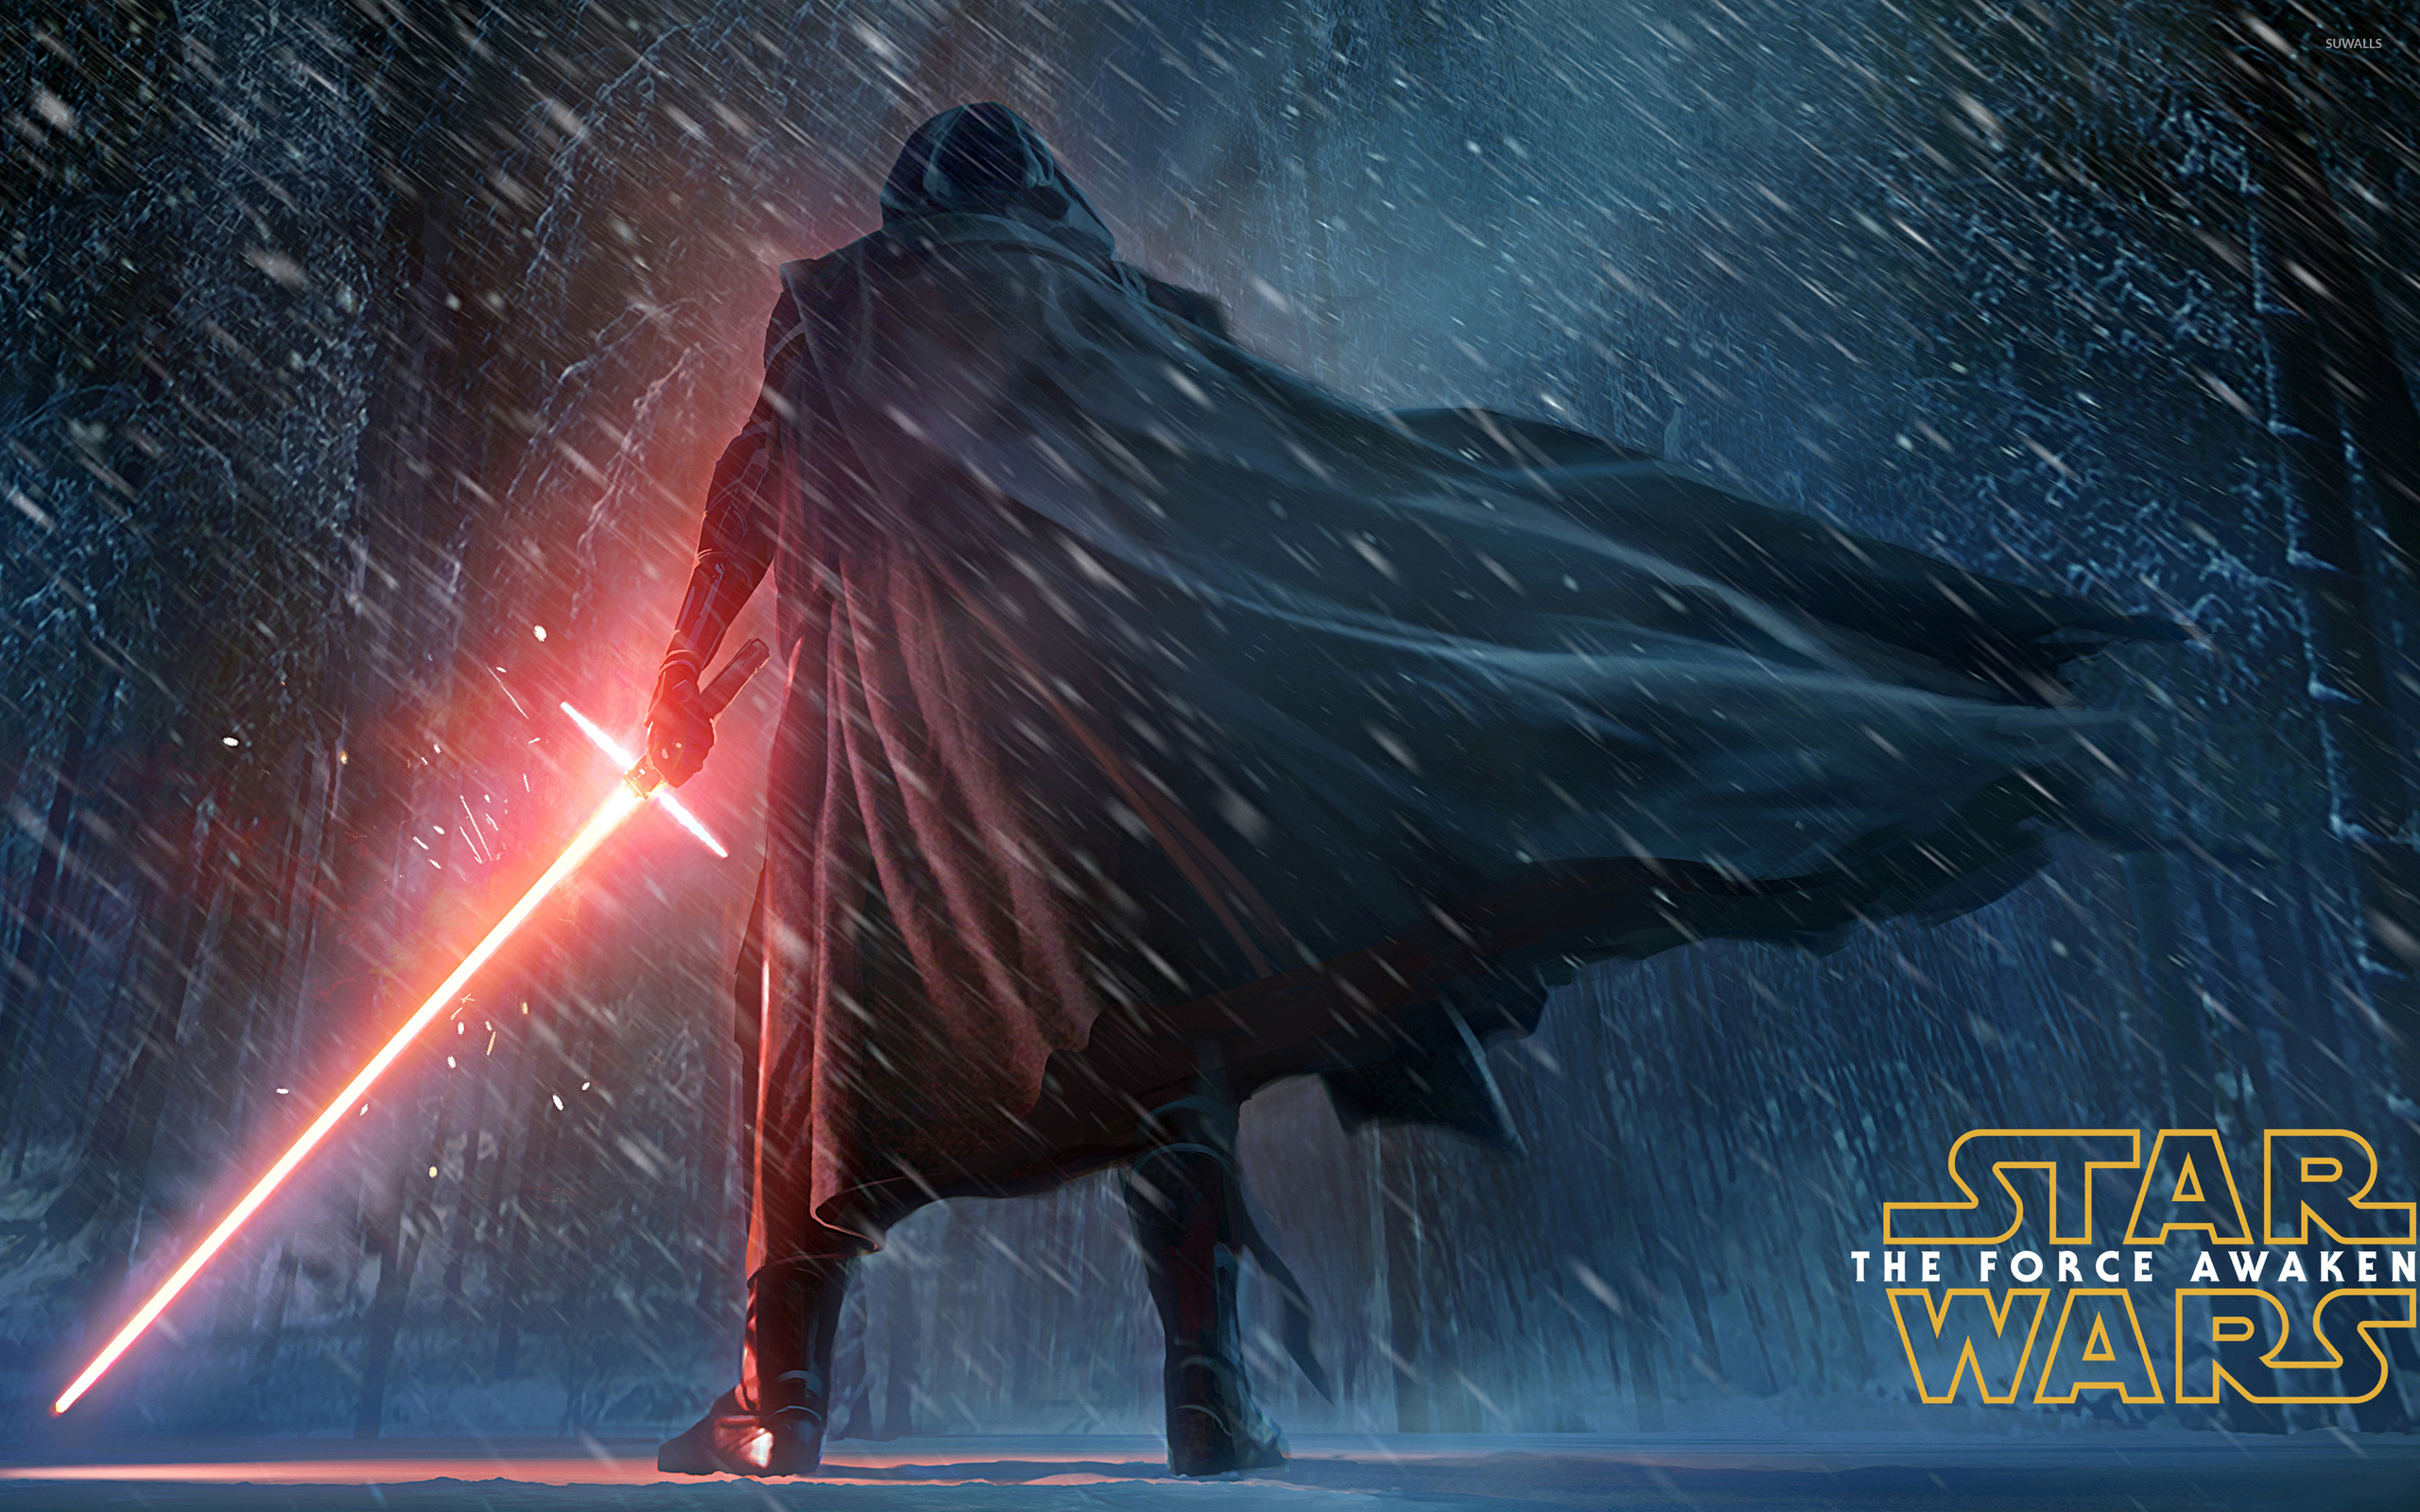 Kylo Ren in the snowy night   Star Wars The Force Awakens wallpaper 2560x1600